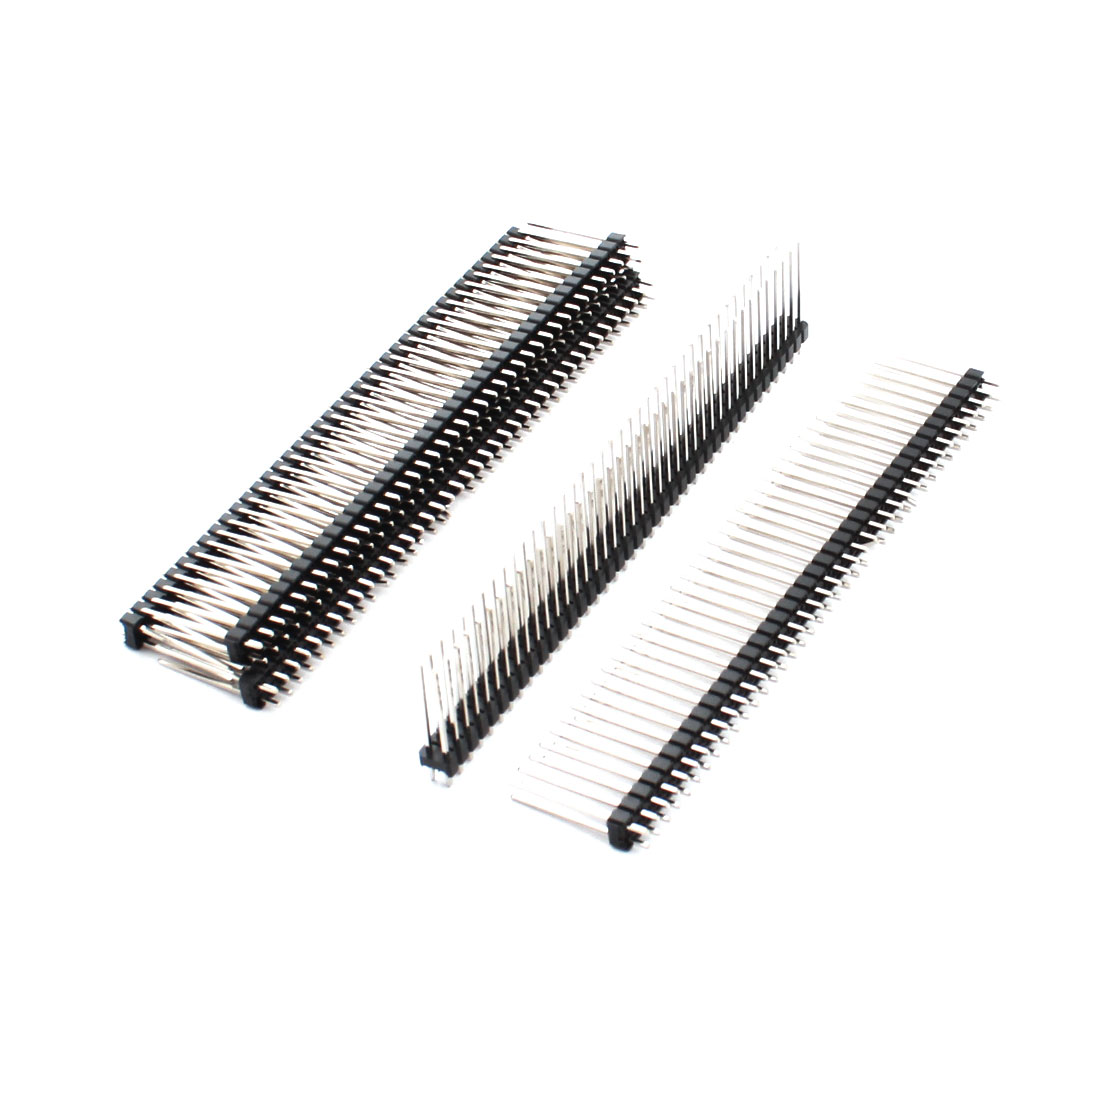 5 Pcs 2.54mm Pitch 2 Row 2x40 80Pin Male Straight Pin Header Connector Strip 21mm Length